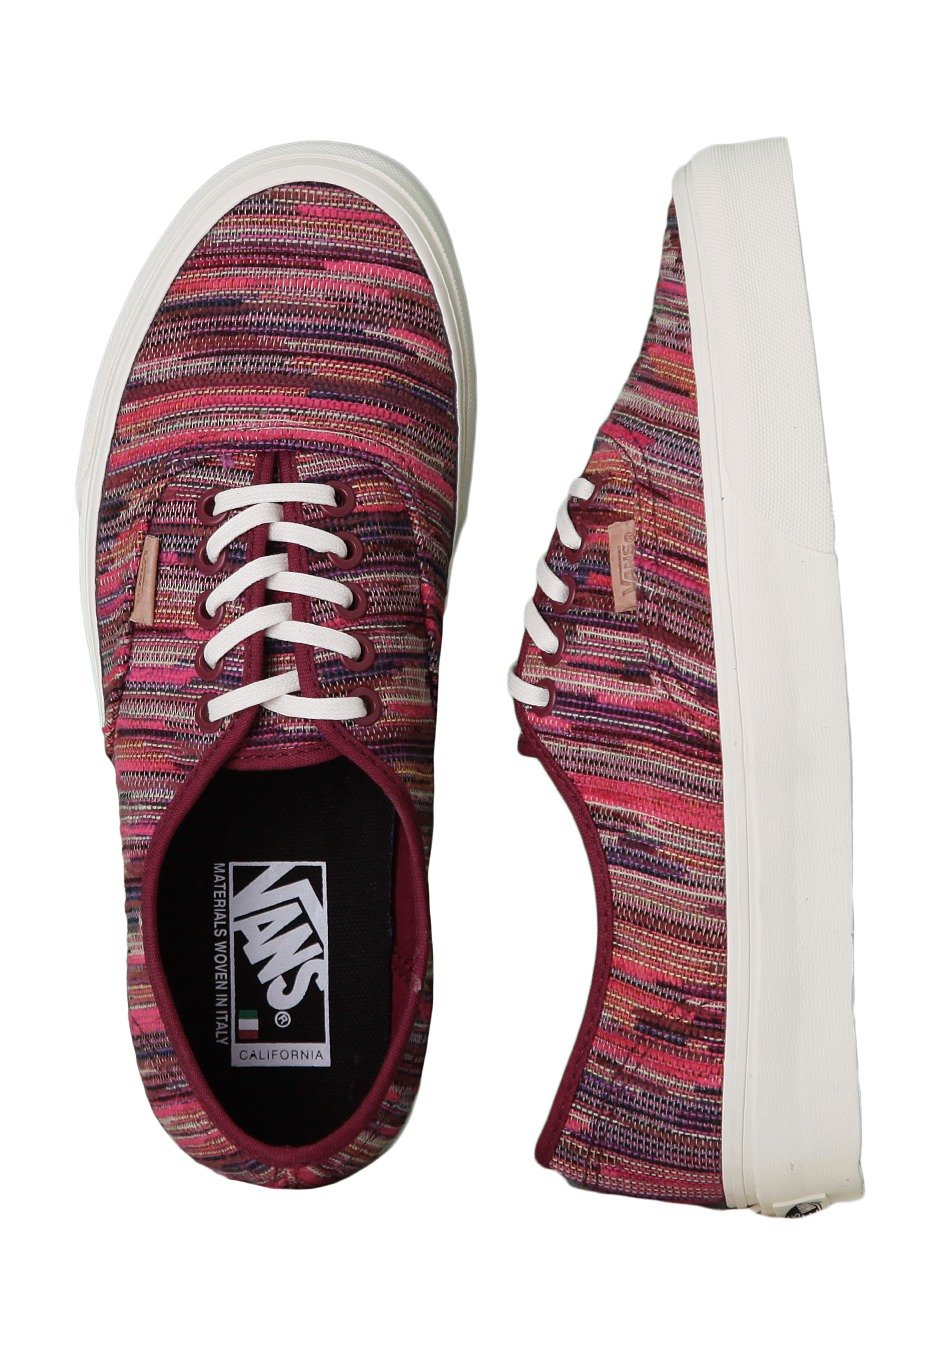 401ec4d086 Vans - Authentic CA Italian Weave Rhododendron - Girl Shoes - Impericon.com  Worldwide